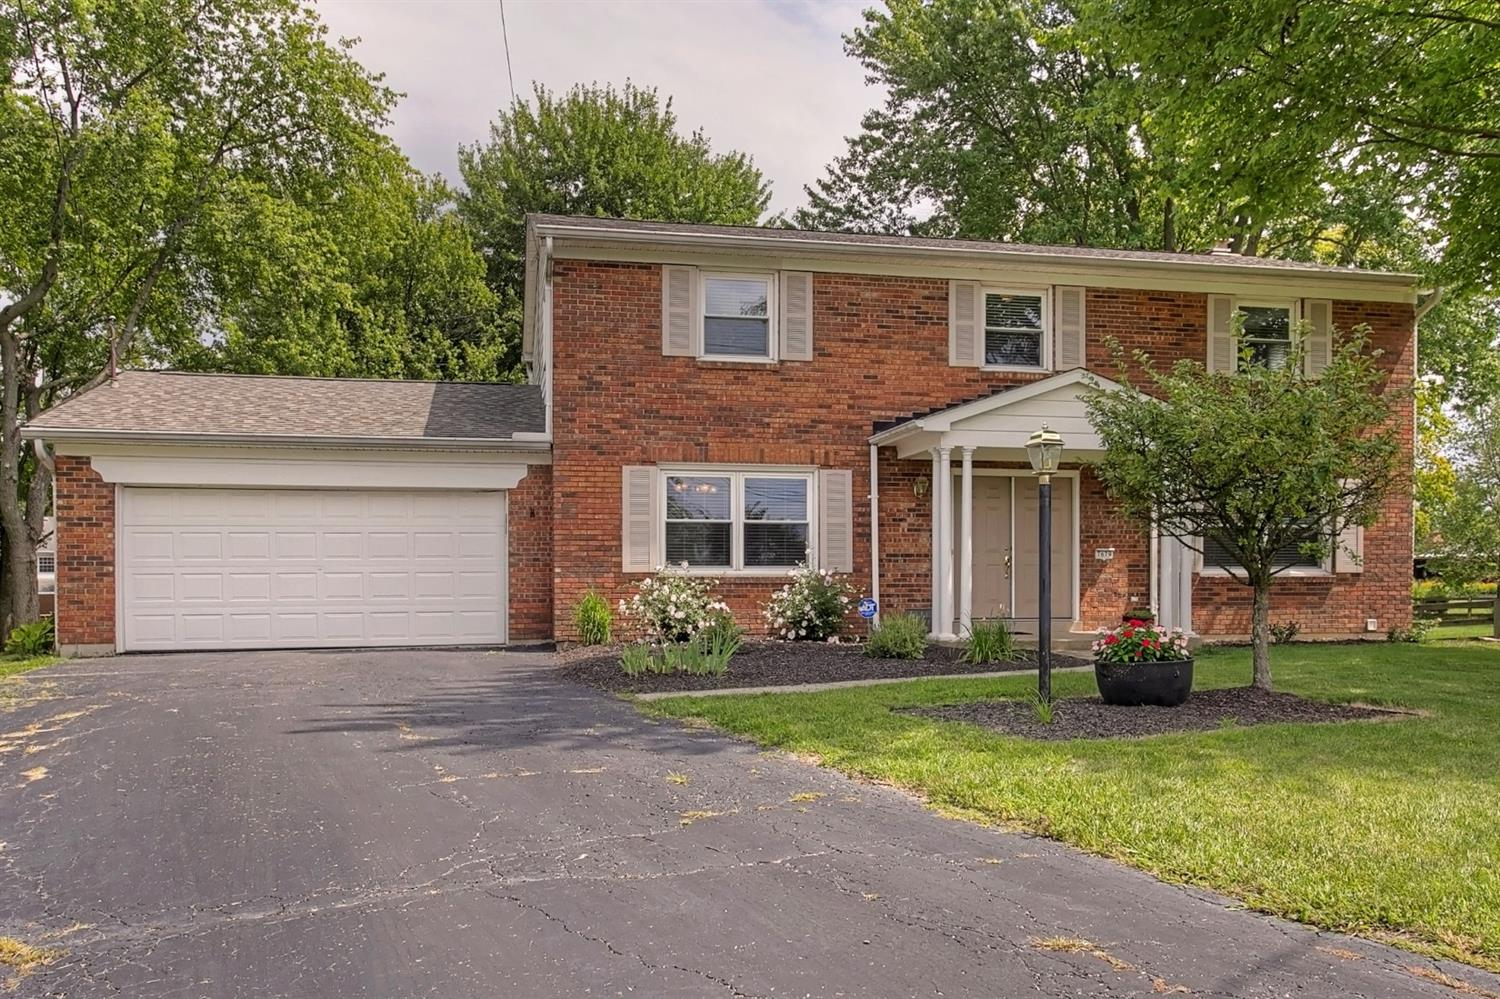 7679 Cloverhill Ct West Chester - East, OH